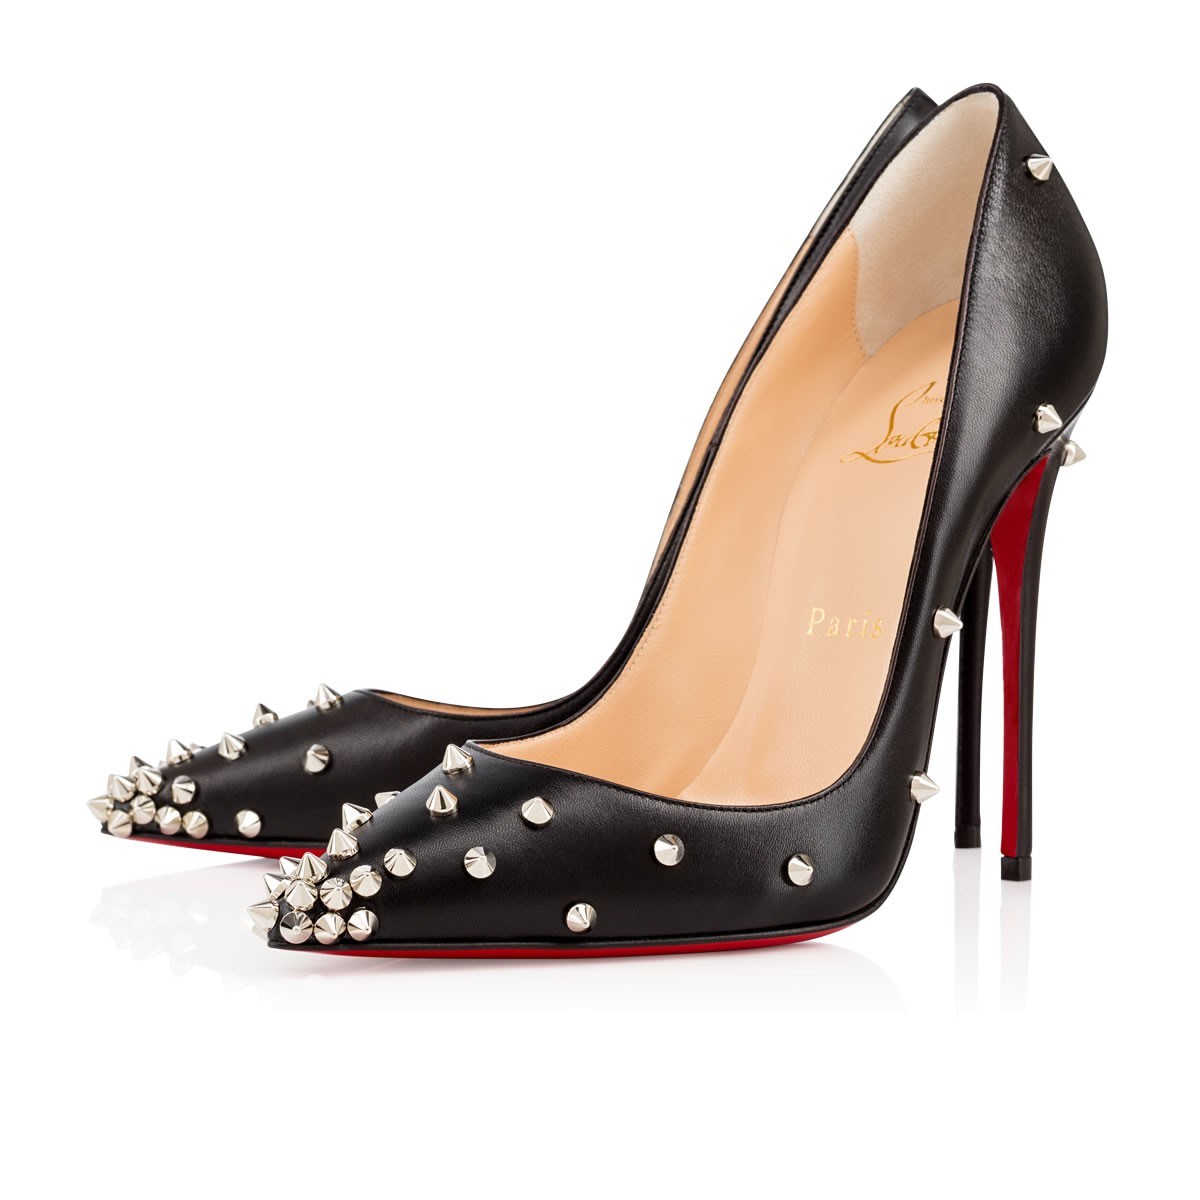 christian louboutin degraspike pumps